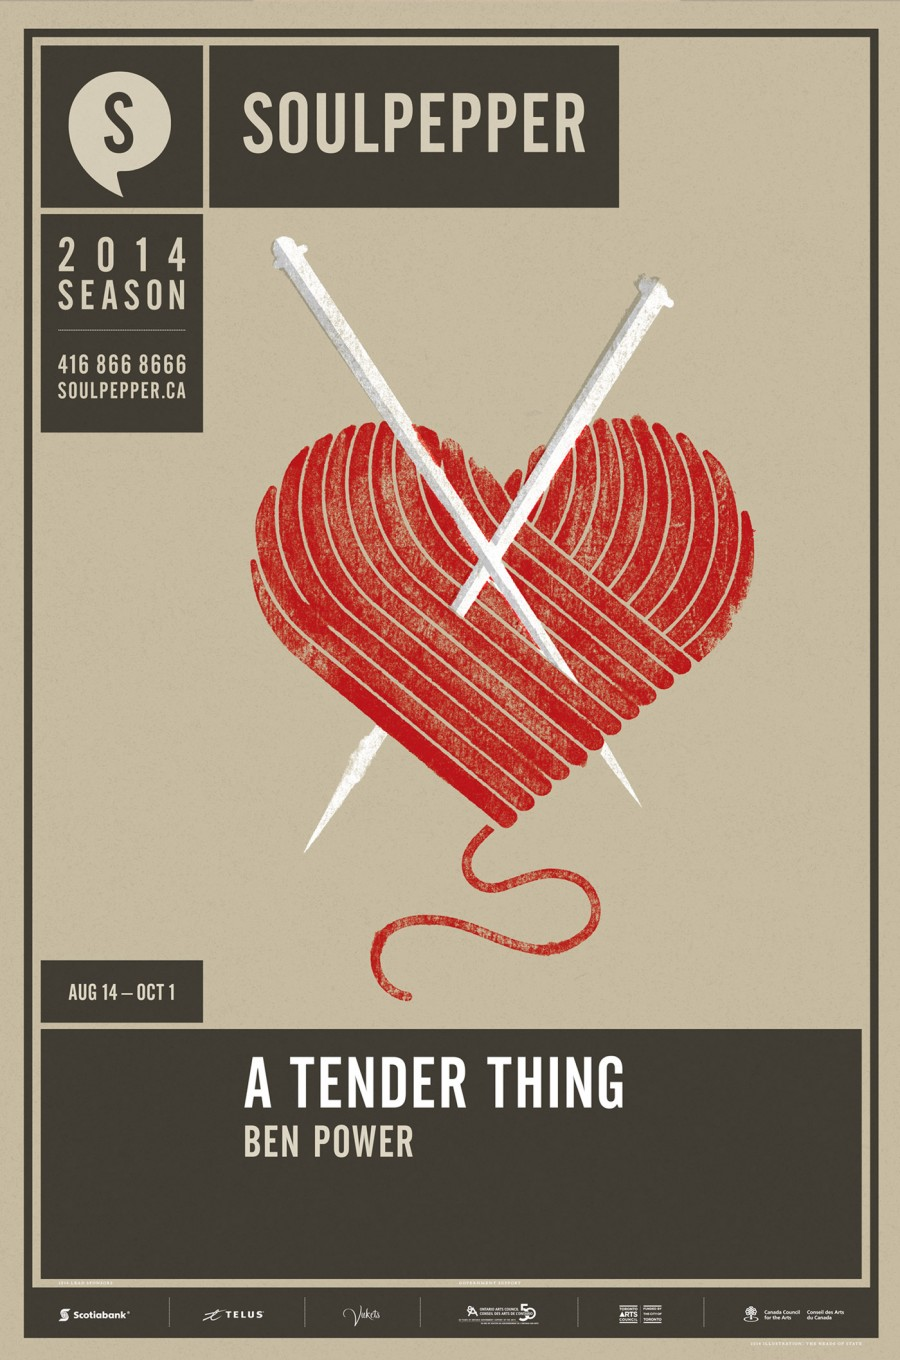 A Tender Thing - Soulpepper Theatre - 2014 Season Poster Series - The Heads of State